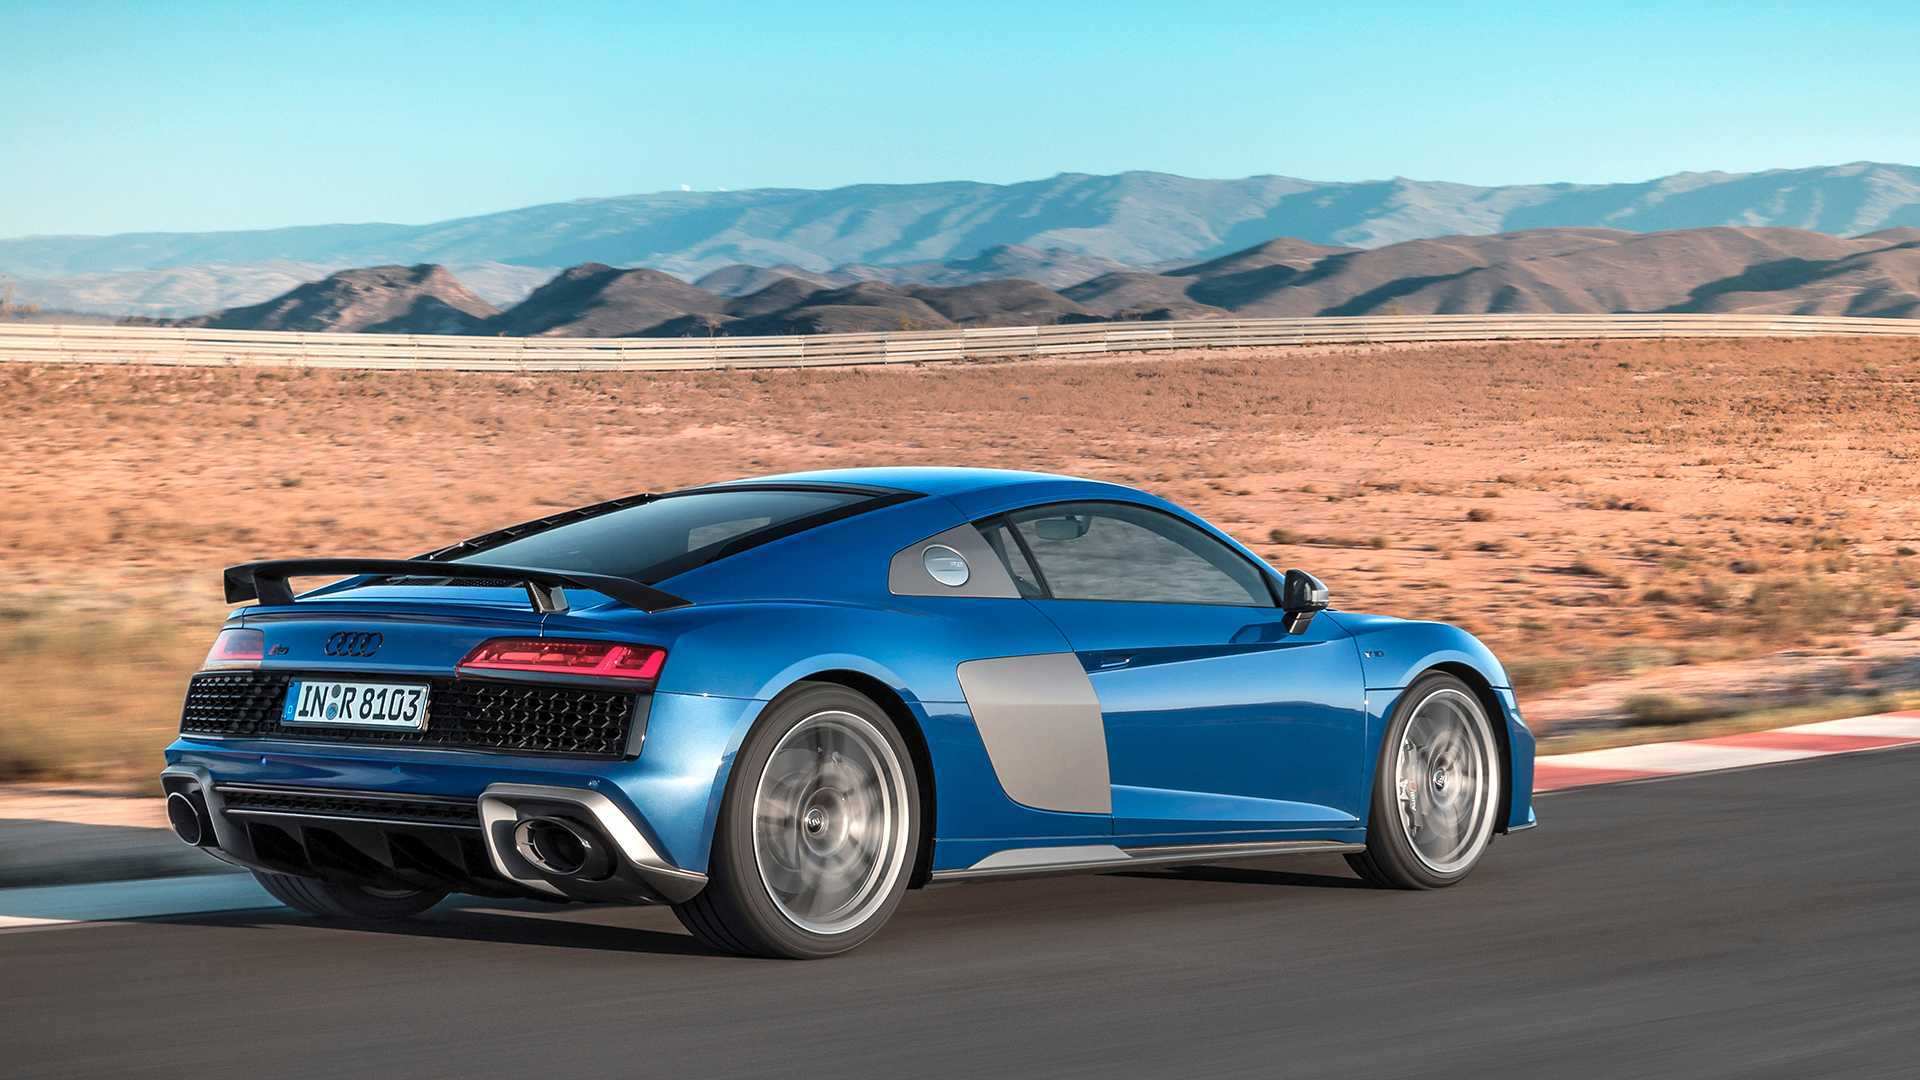 70 The Pictures Of 2020 Audi R8 Exterior for Pictures Of 2020 Audi R8